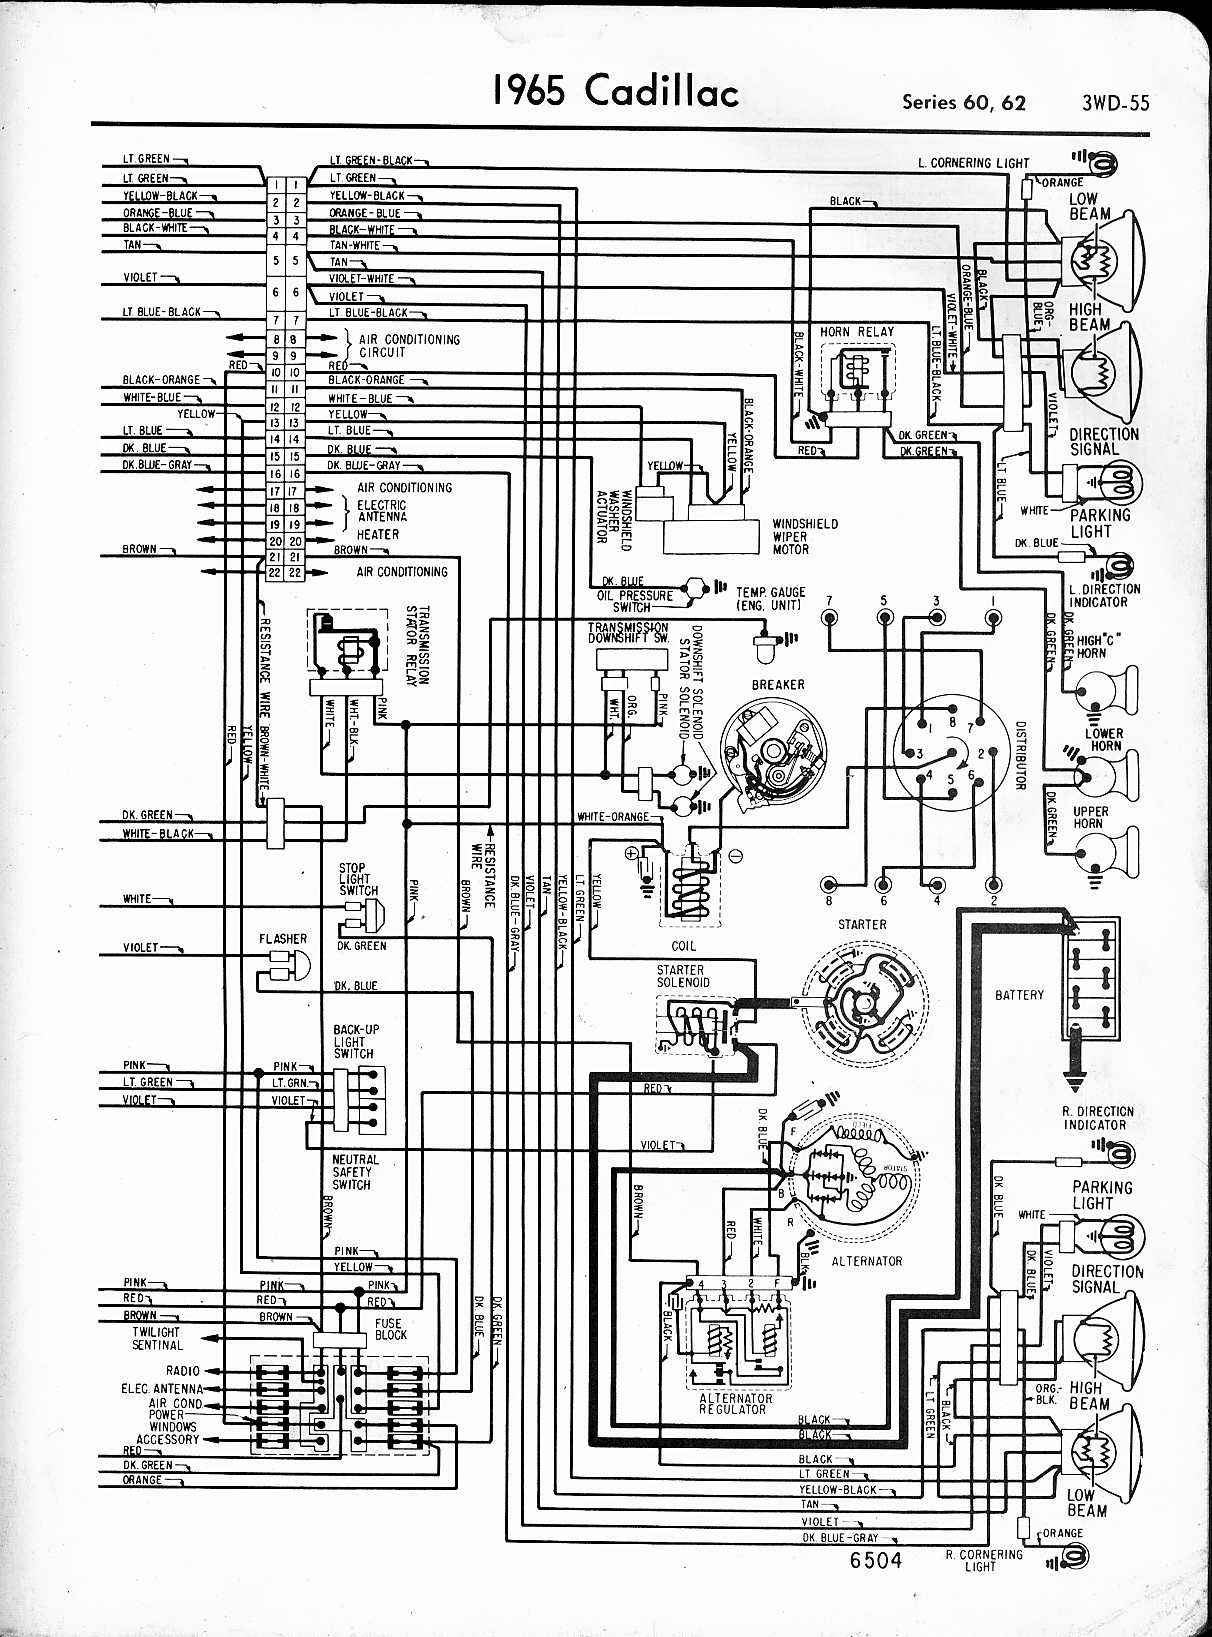 Fenwal Ignition Module Wiring Diagram 35 655500 001 Viair Wiring